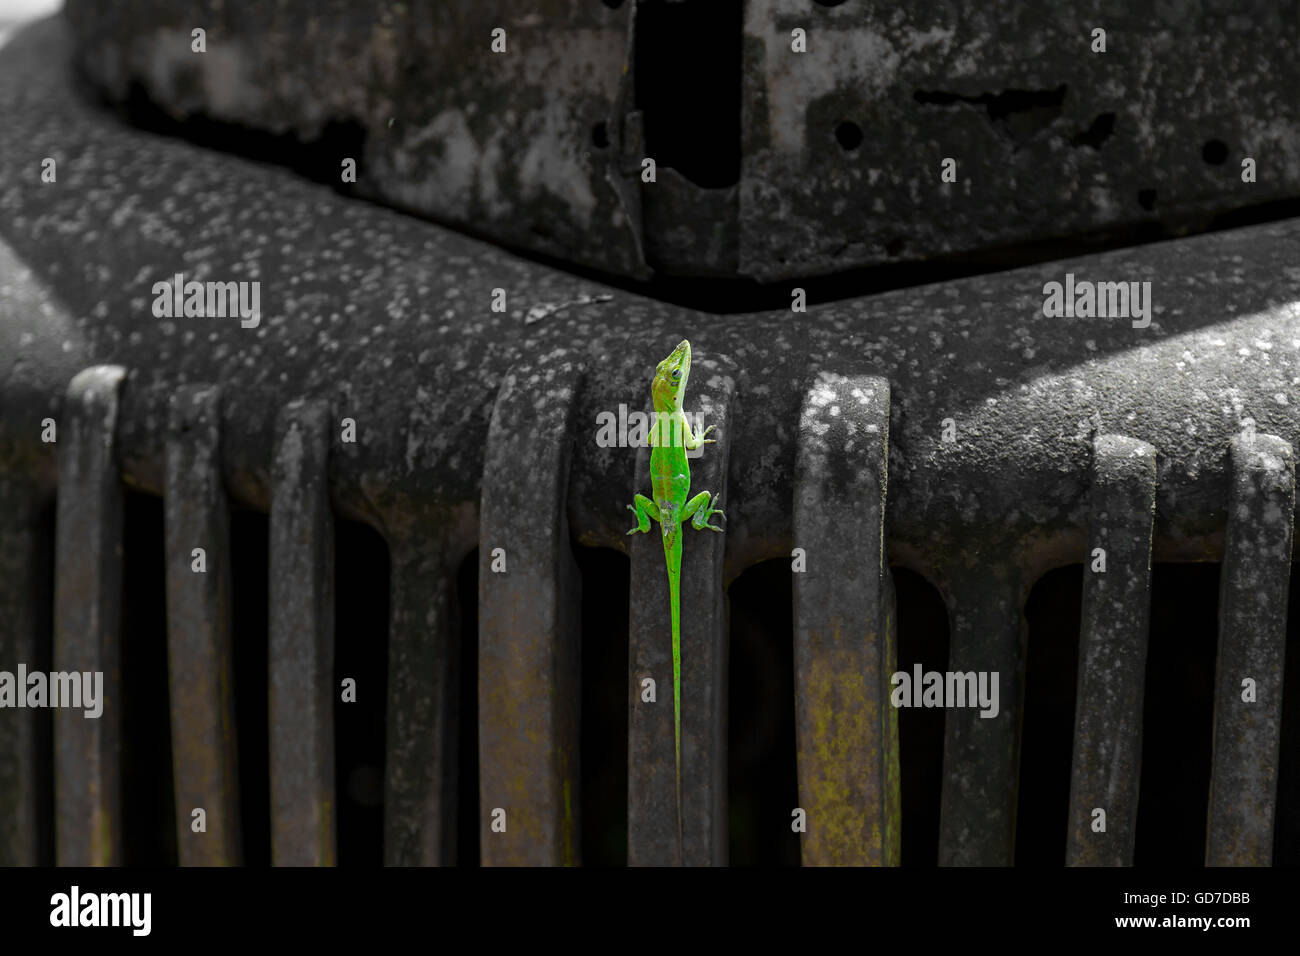 A Gecko resting on the front end of an antique rusted car - Stock Image